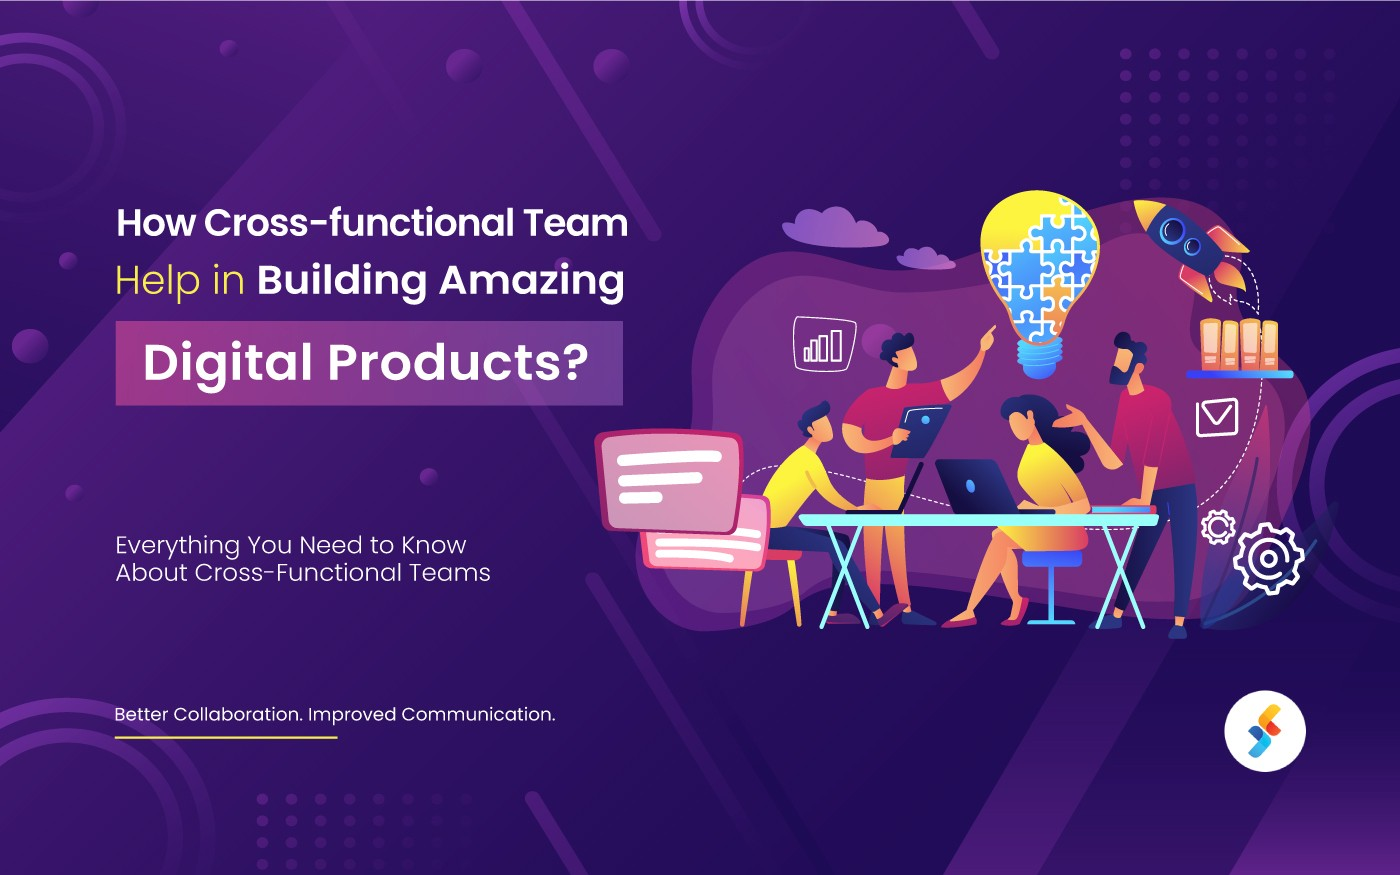 How Cross-functional Teams Help in Building Amazing Digital Products?